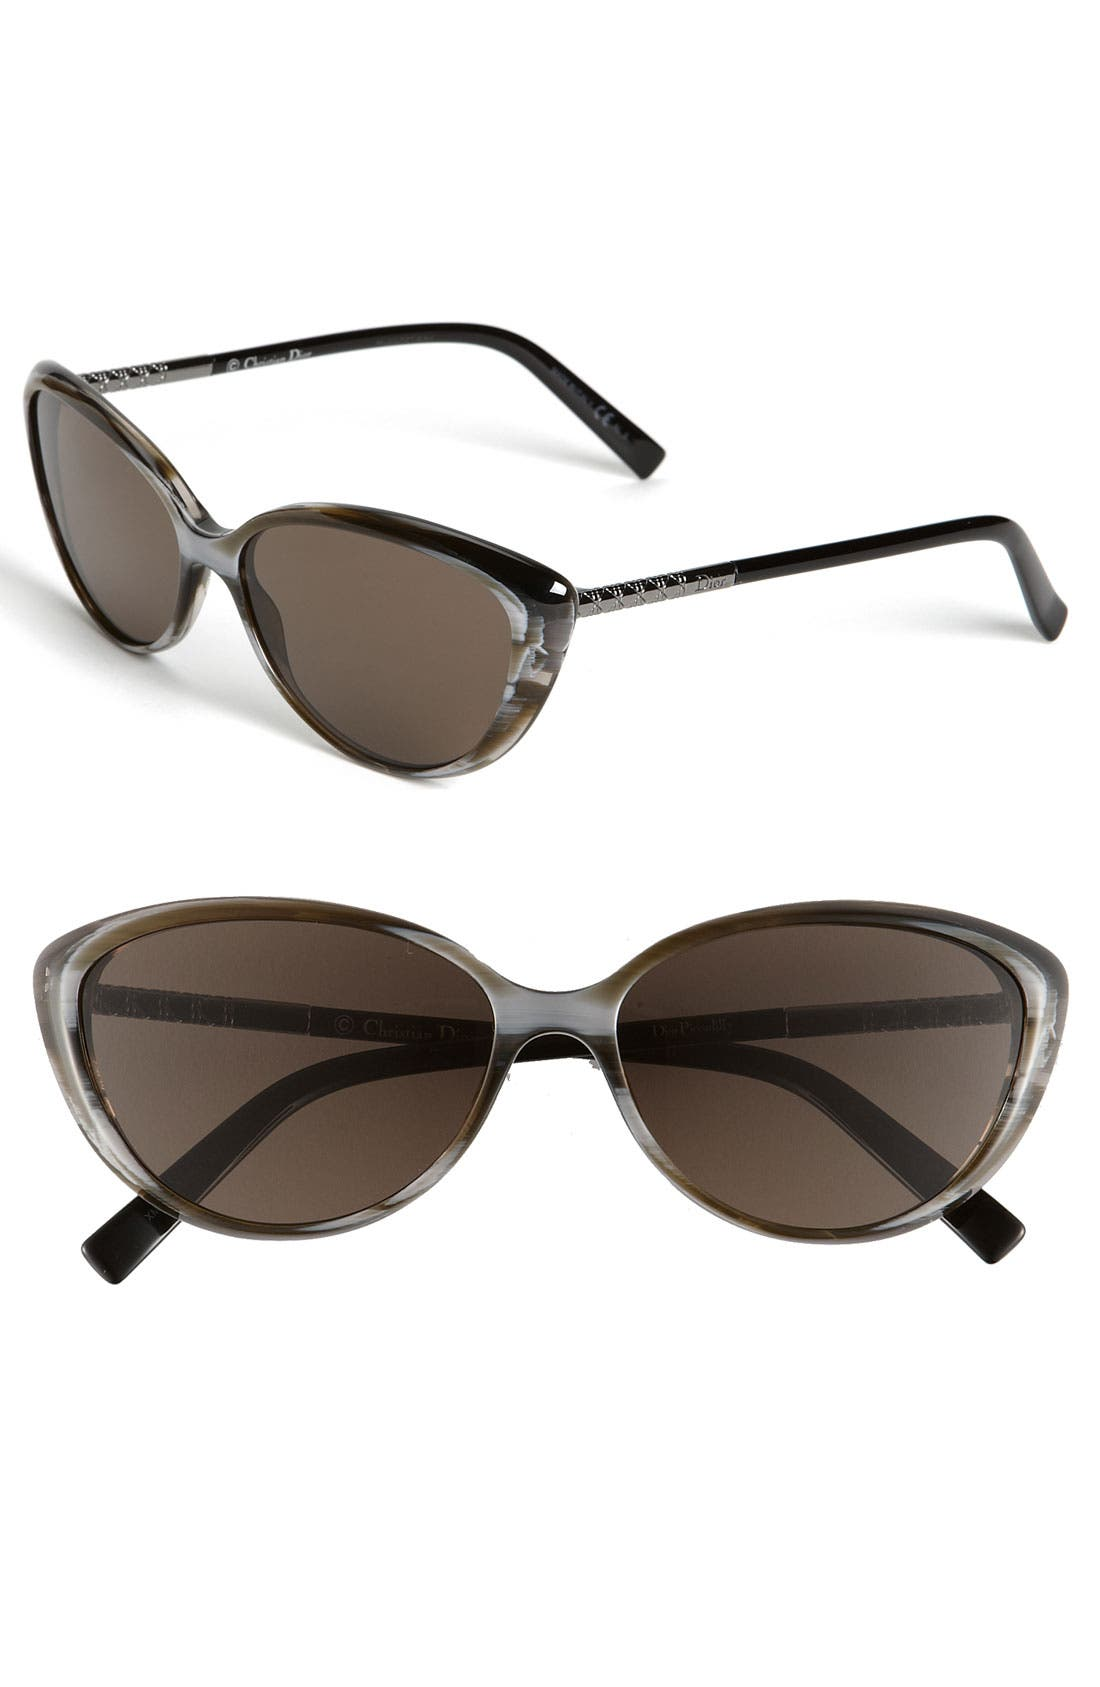 Main Image - Dior 56mm Cat Eye Sunglasses